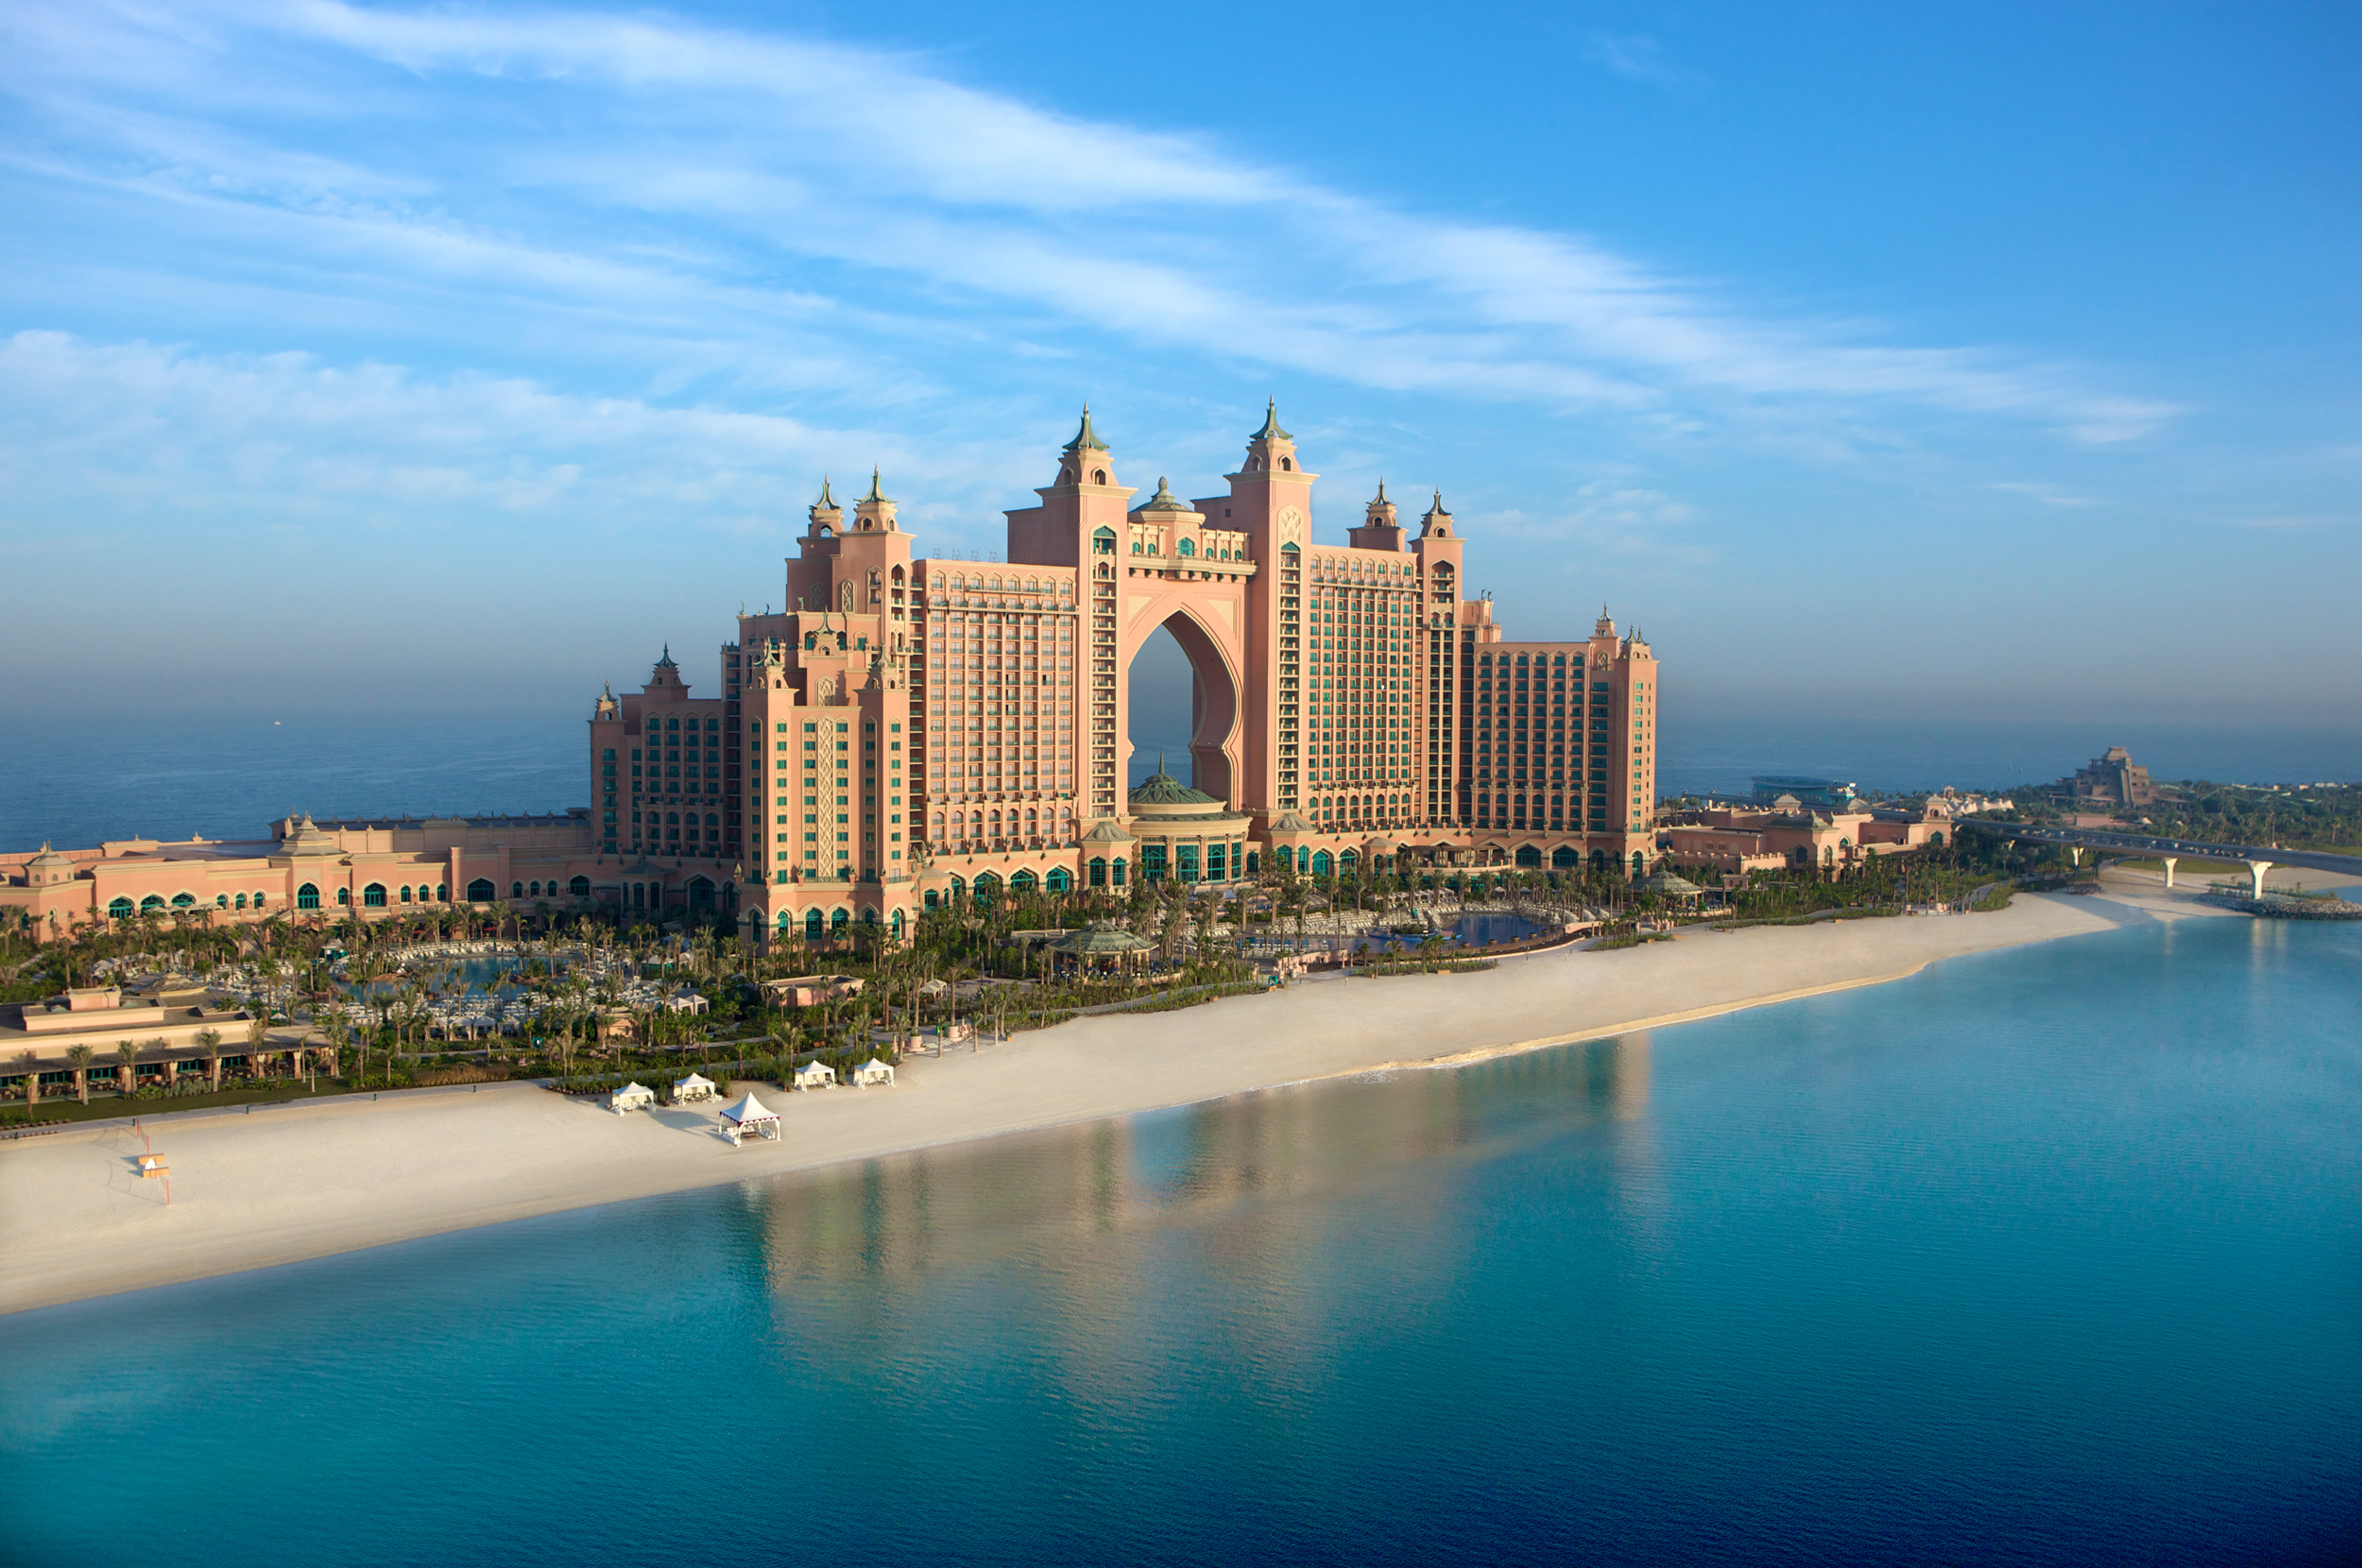 Atlantis, The Palm (2)